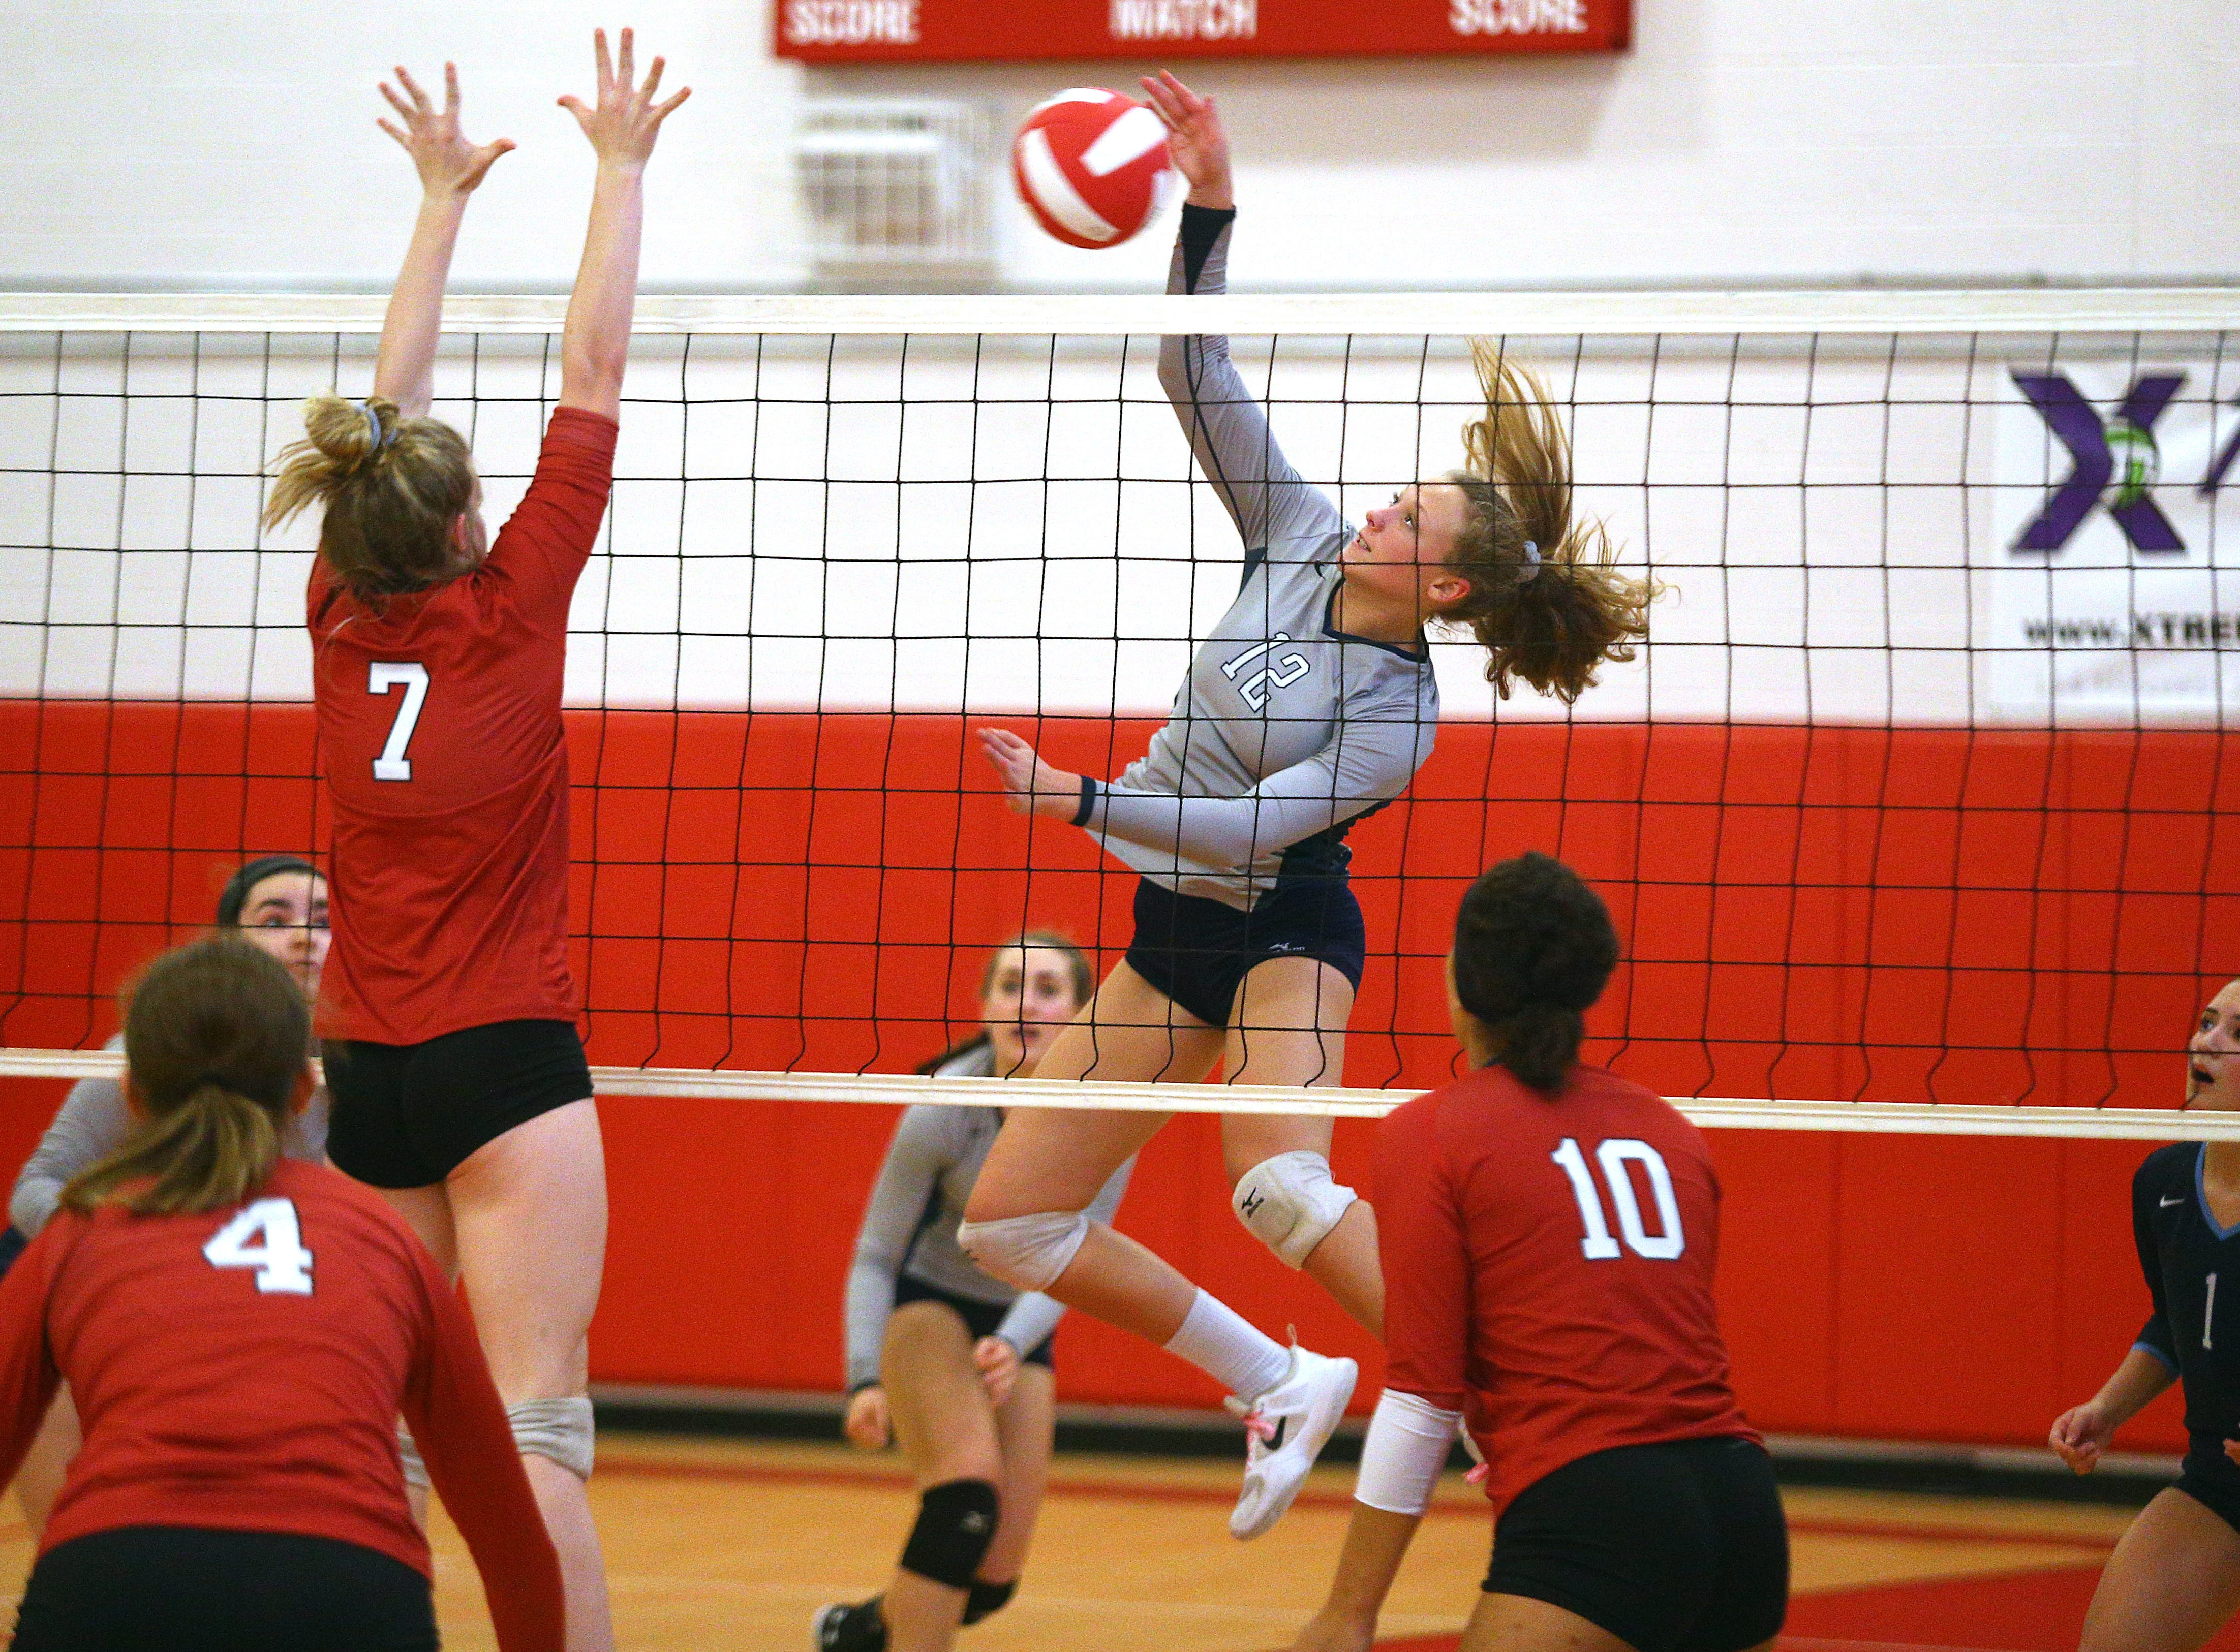 West Morris Central's Olivia Falzarano goes for a kill vs. Mount Olive during their volleyball matchup.  October 4, 2018, Mount Olive, NJ